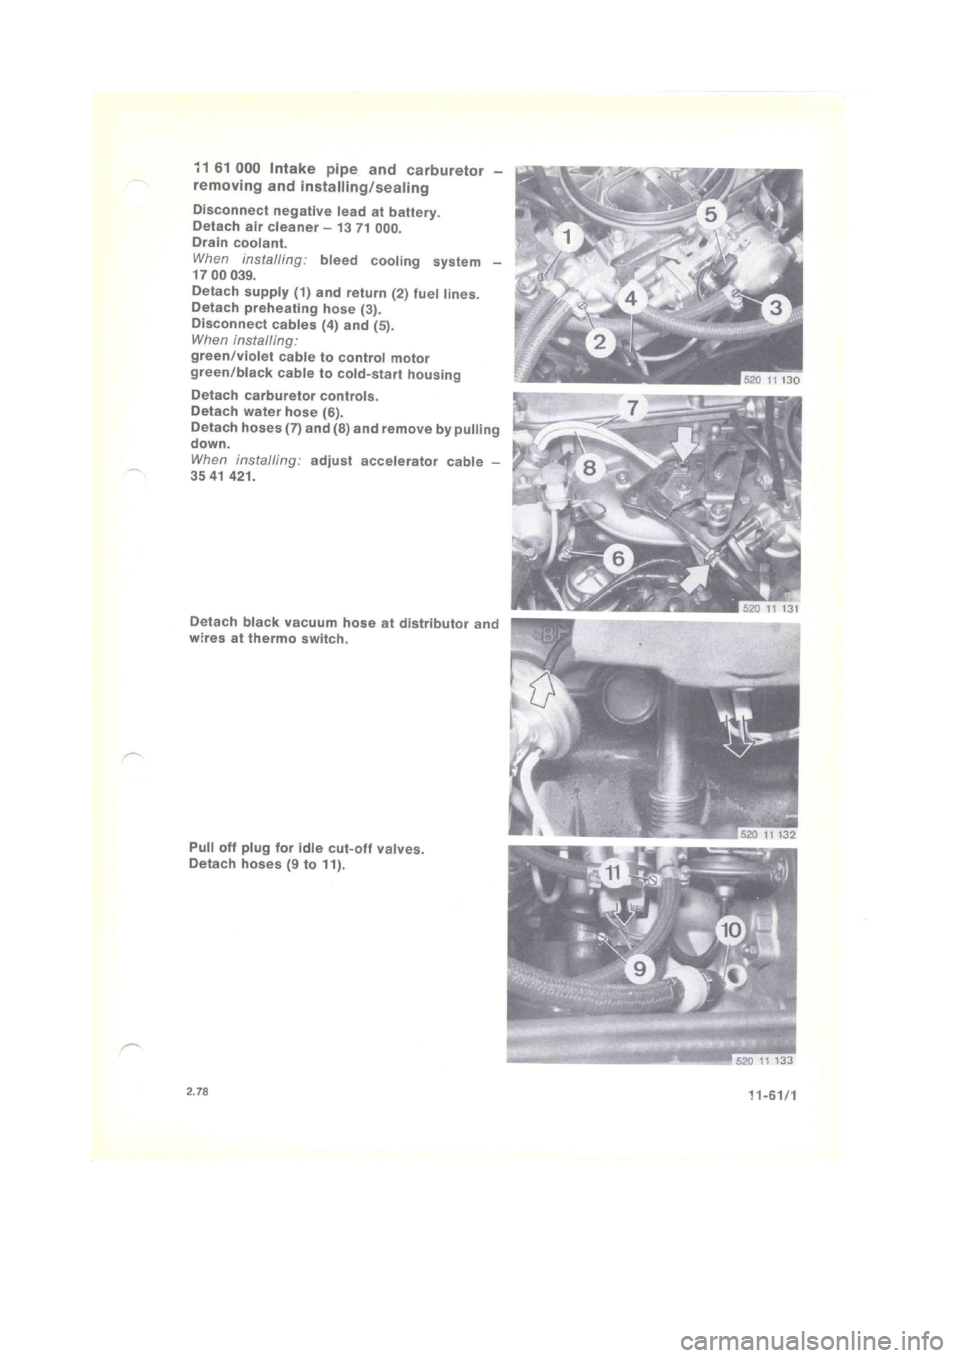 BMW 320i 1976 E21 M20 Engine Workshop Manual (121 Pages